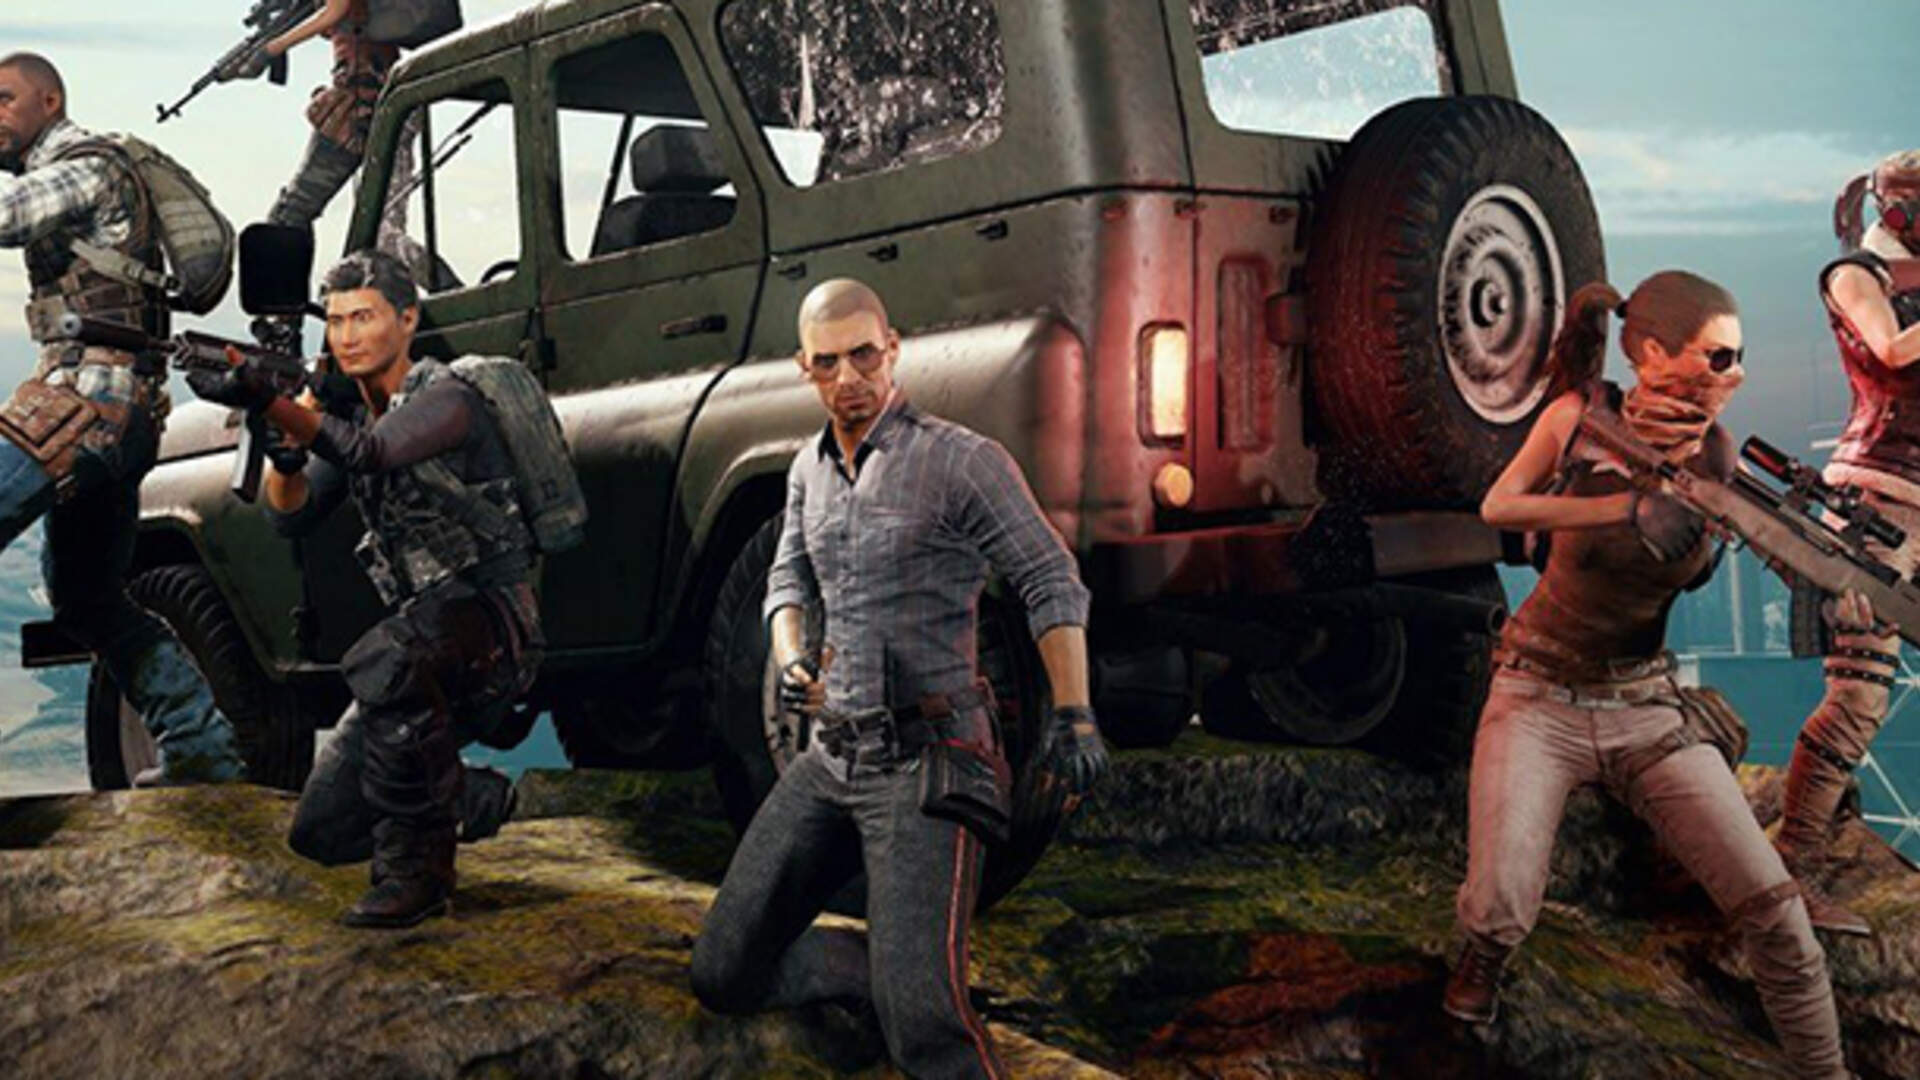 The Future of PUBG: We Talk to PUBG's Creators About its Eventful First Year and the Road Ahead